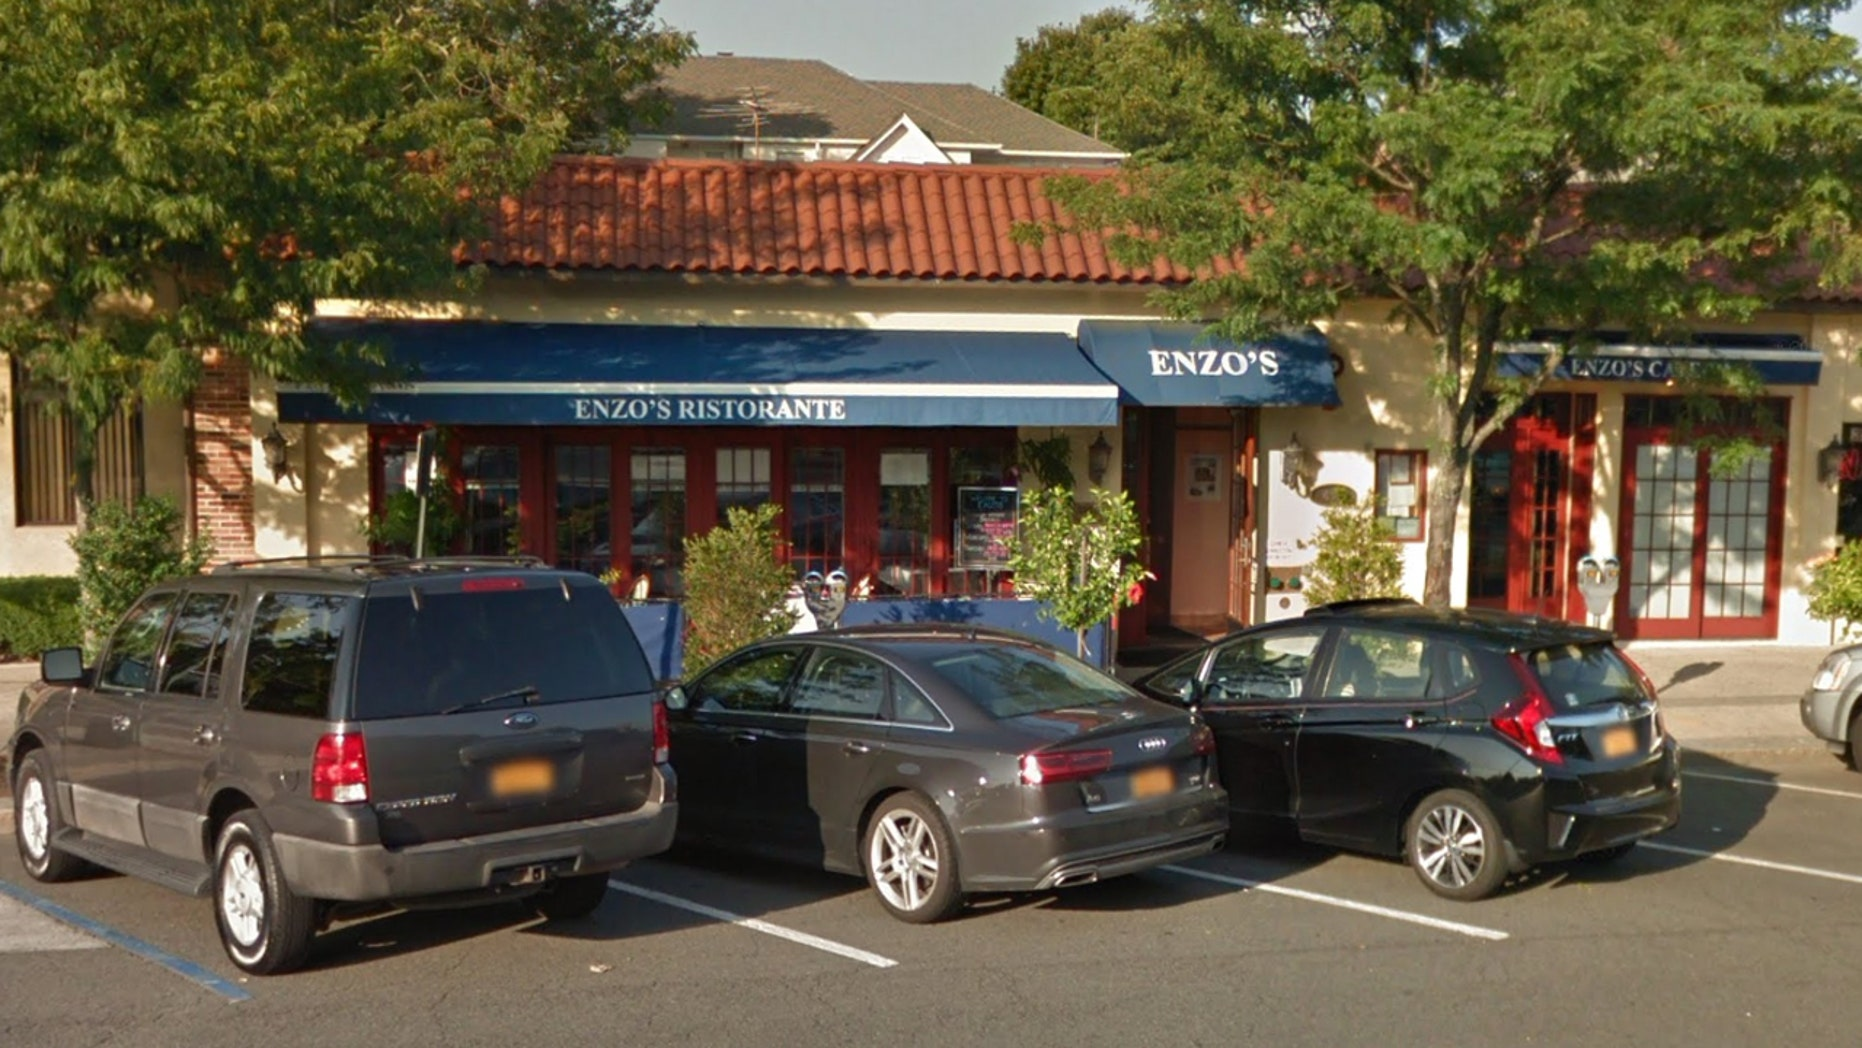 A 79-year-old Yonkers resident crashed into a popular Italian eatery, Enzo's Ristorante, Sunday night, injuring nine.